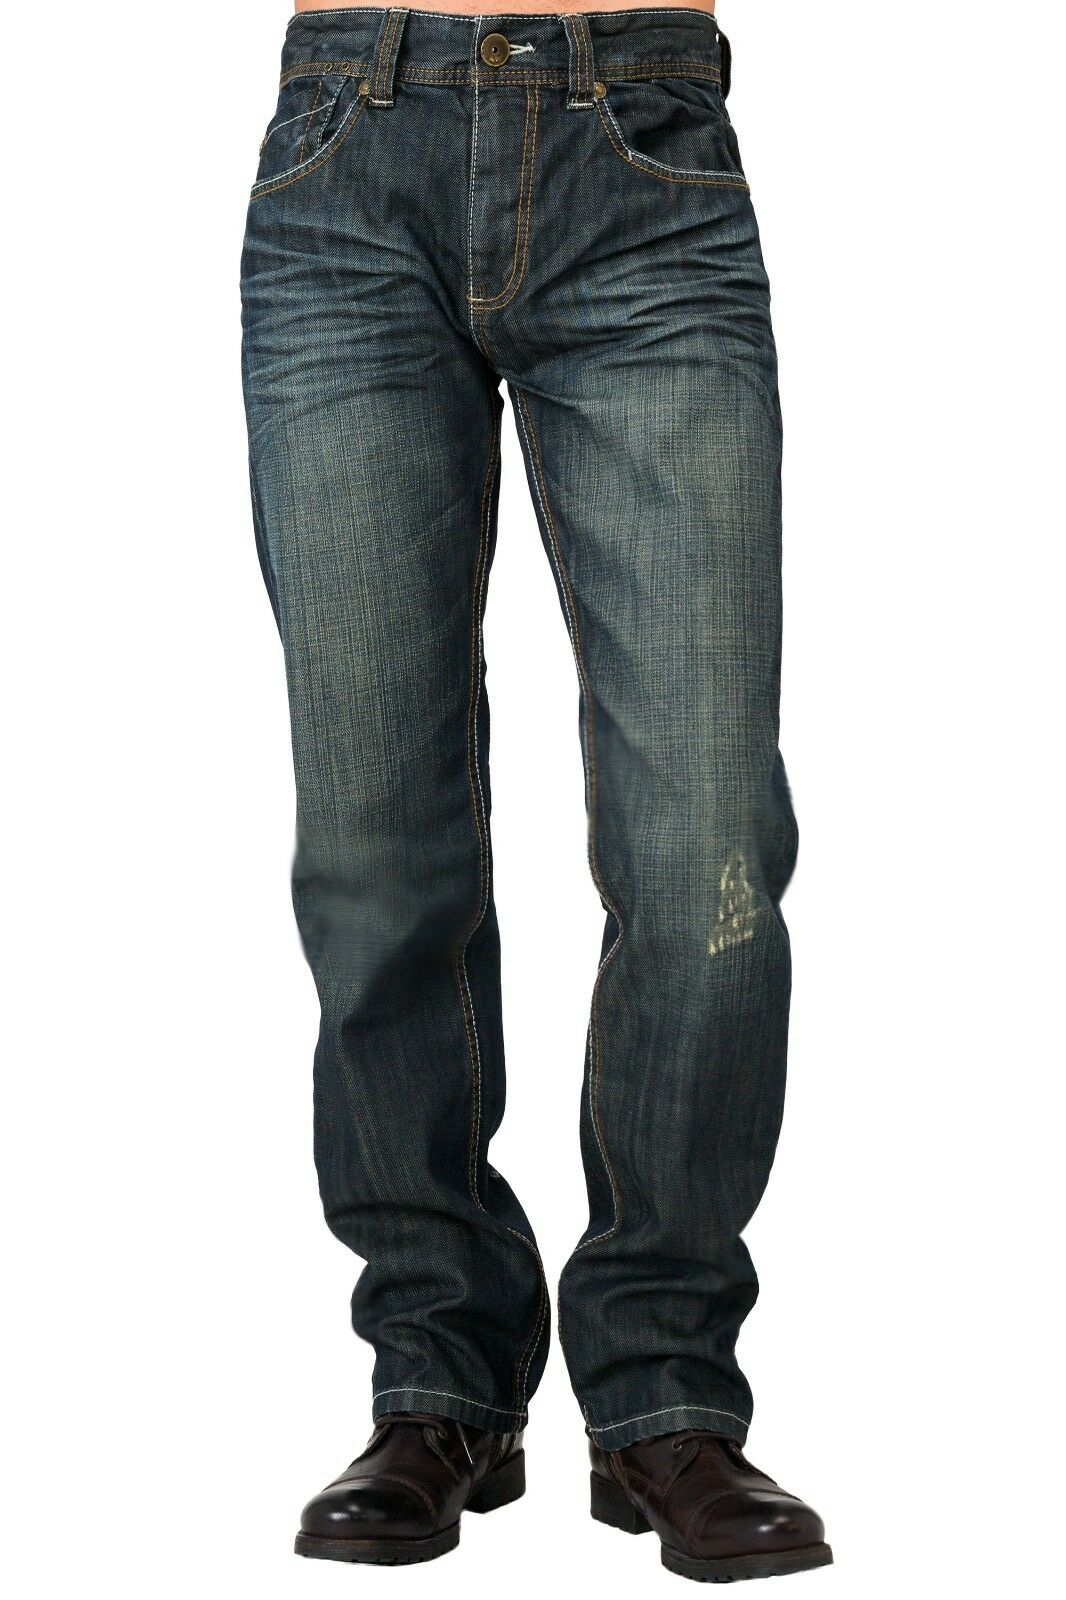 Level 7 Men's Relaxed Straight Premium Denim Jeans Distressed bluee Stone Wash